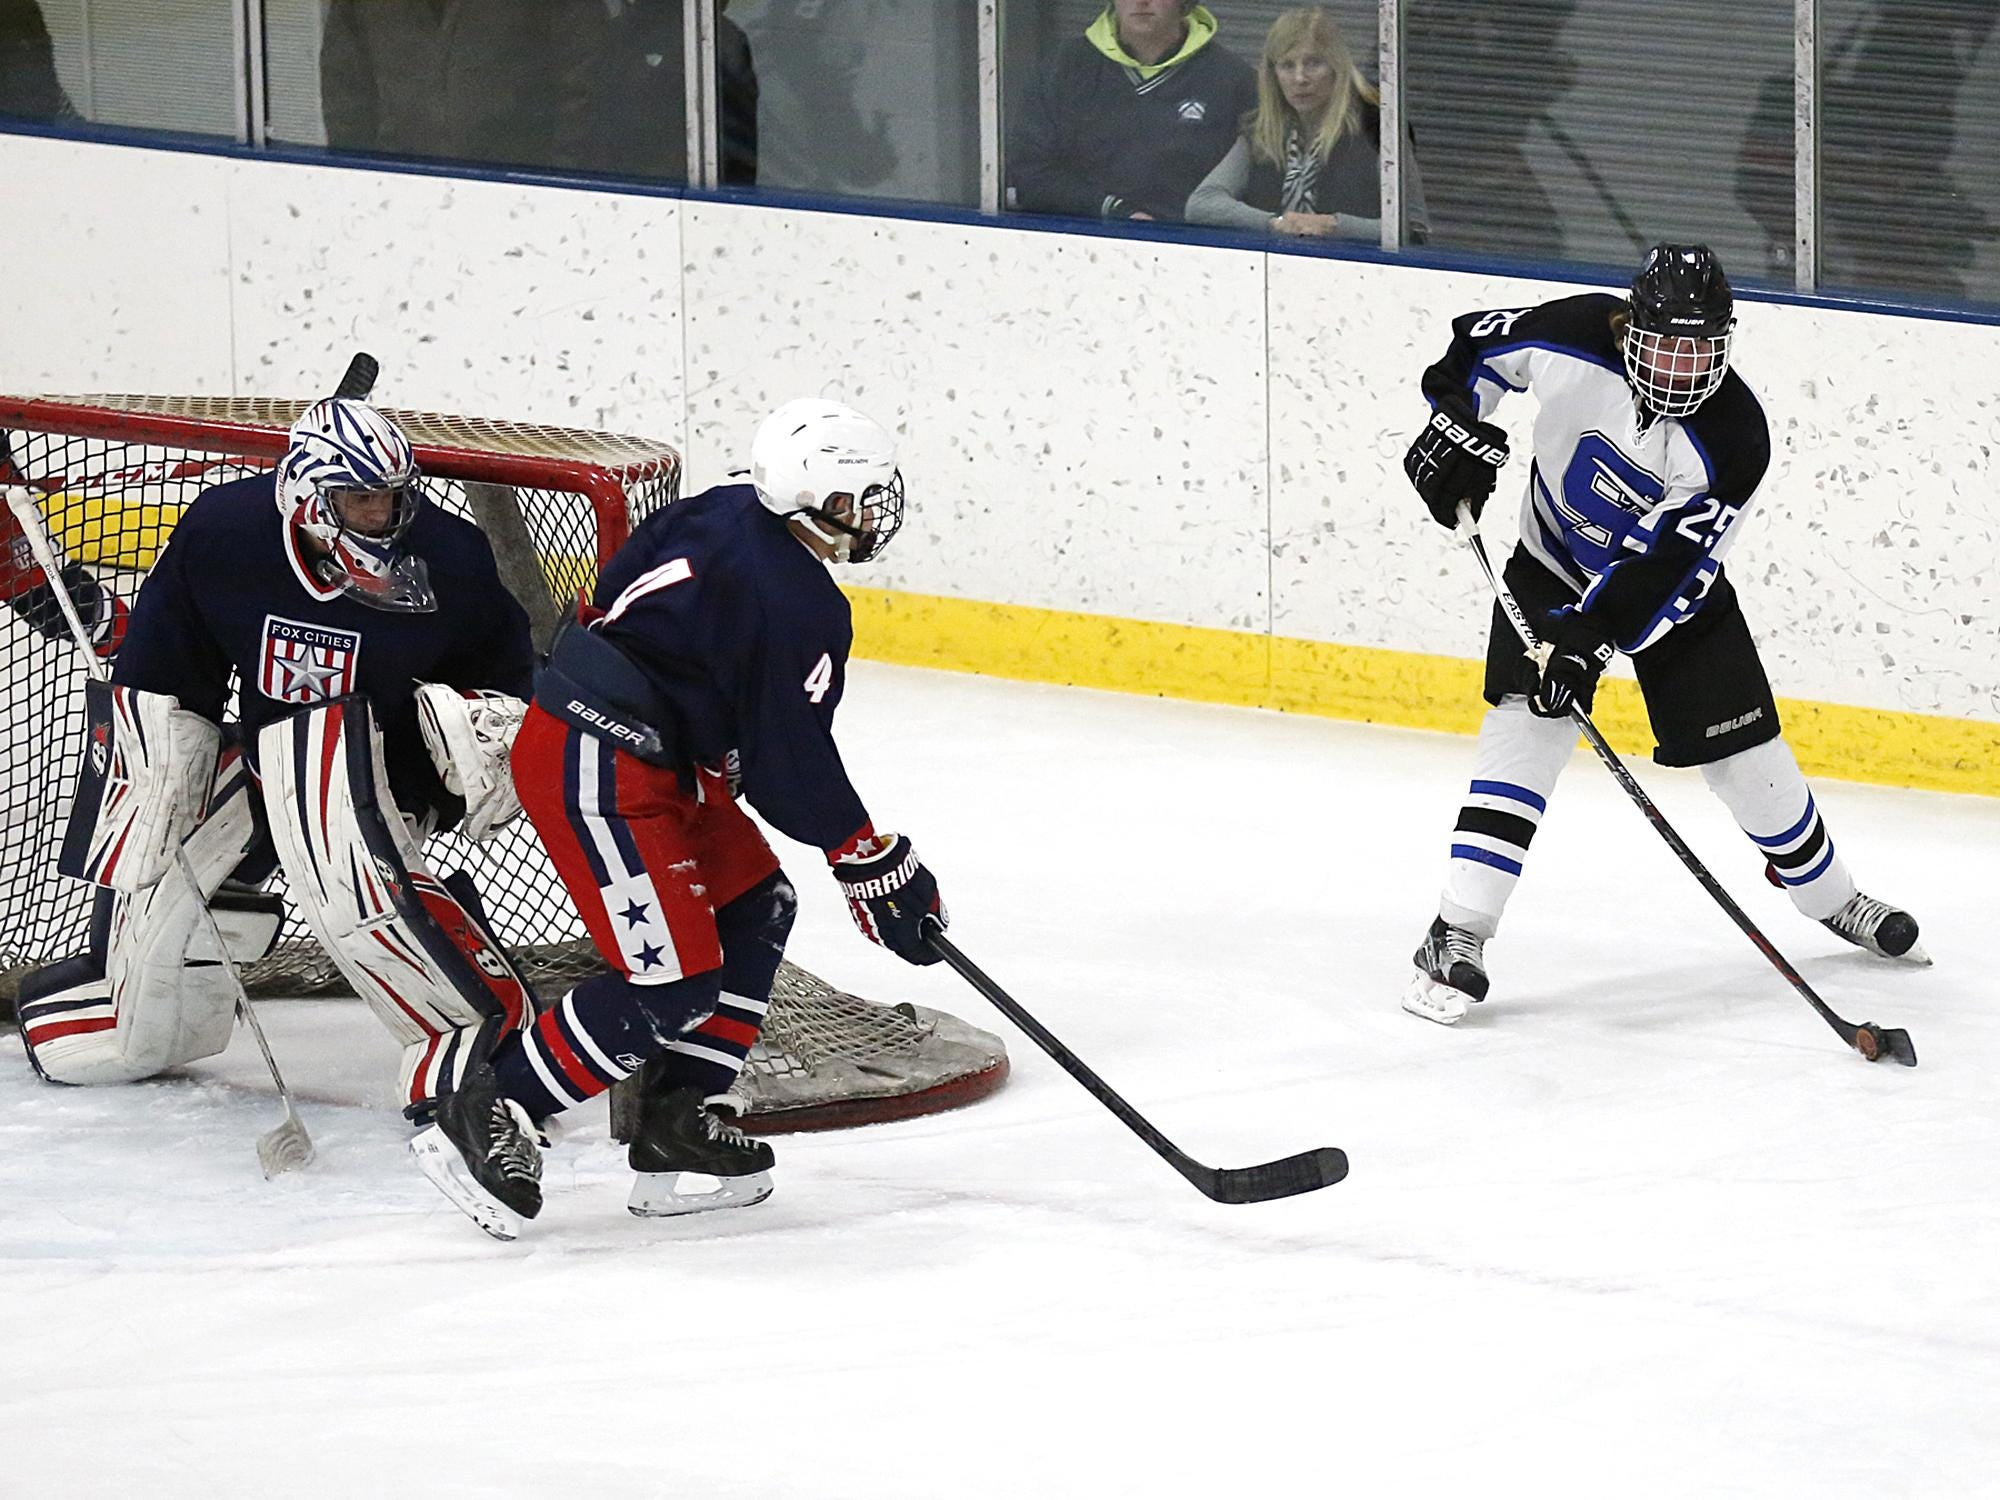 St. Mary's Springs' Mitchell Grebe works his way around the Fox Cities Stars' net Tuesday night at the Blue Line Family Ice Center in Fond du Lac.